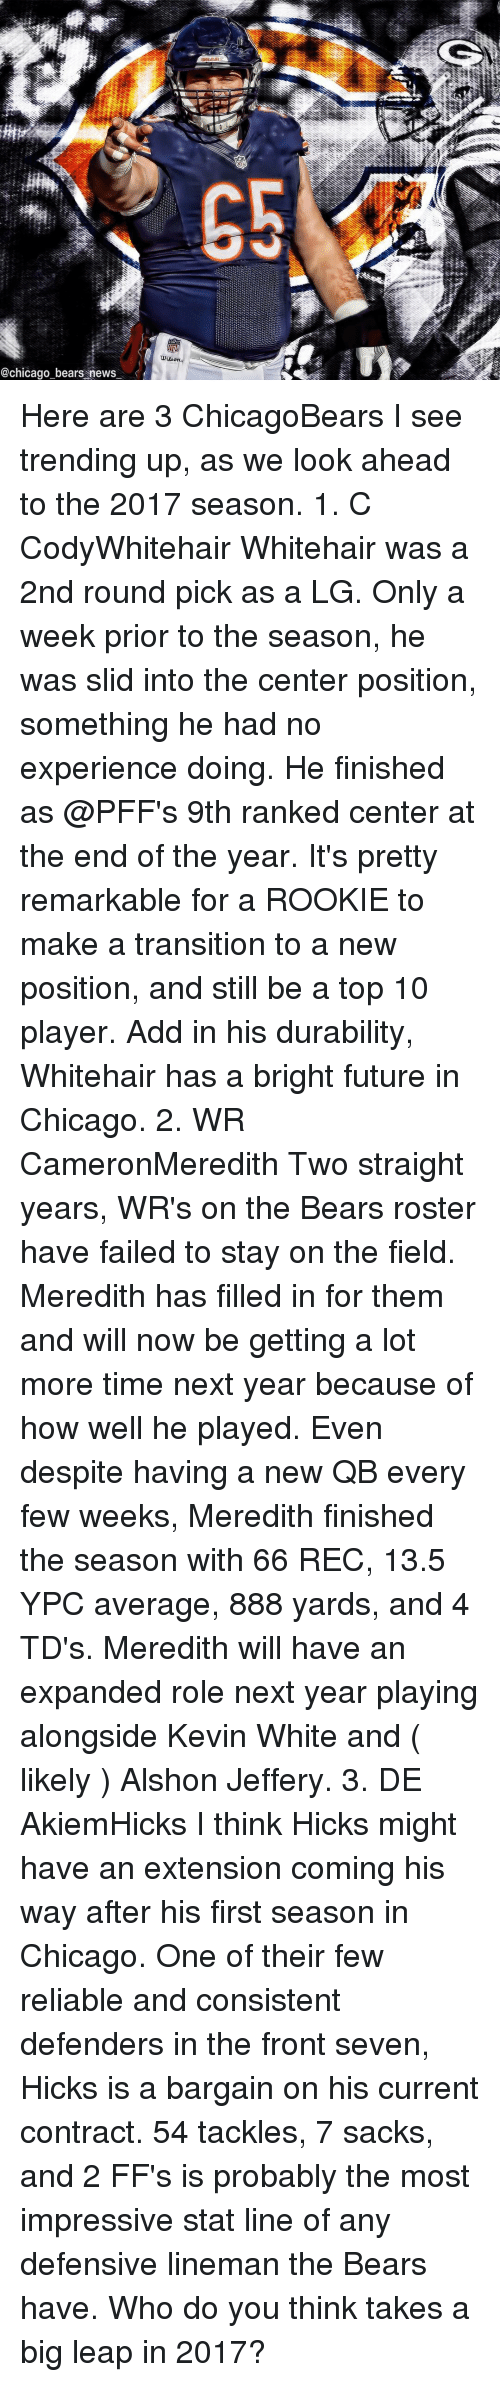 Chicago, Chicago Bears, and Fail: @chicago bears news Here are 3 ChicagoBears I see trending up, as we look ahead to the 2017 season. 1. C CodyWhitehair Whitehair was a 2nd round pick as a LG. Only a week prior to the season, he was slid into the center position, something he had no experience doing. He finished as @PFF's 9th ranked center at the end of the year. It's pretty remarkable for a ROOKIE to make a transition to a new position, and still be a top 10 player. Add in his durability, Whitehair has a bright future in Chicago. 2. WR CameronMeredith Two straight years, WR's on the Bears roster have failed to stay on the field. Meredith has filled in for them and will now be getting a lot more time next year because of how well he played. Even despite having a new QB every few weeks, Meredith finished the season with 66 REC, 13.5 YPC average, 888 yards, and 4 TD's. Meredith will have an expanded role next year playing alongside Kevin White and ( likely ) Alshon Jeffery. 3. DE AkiemHicks I think Hicks might have an extension coming his way after his first season in Chicago. One of their few reliable and consistent defenders in the front seven, Hicks is a bargain on his current contract. 54 tackles, 7 sacks, and 2 FF's is probably the most impressive stat line of any defensive lineman the Bears have. Who do you think takes a big leap in 2017?